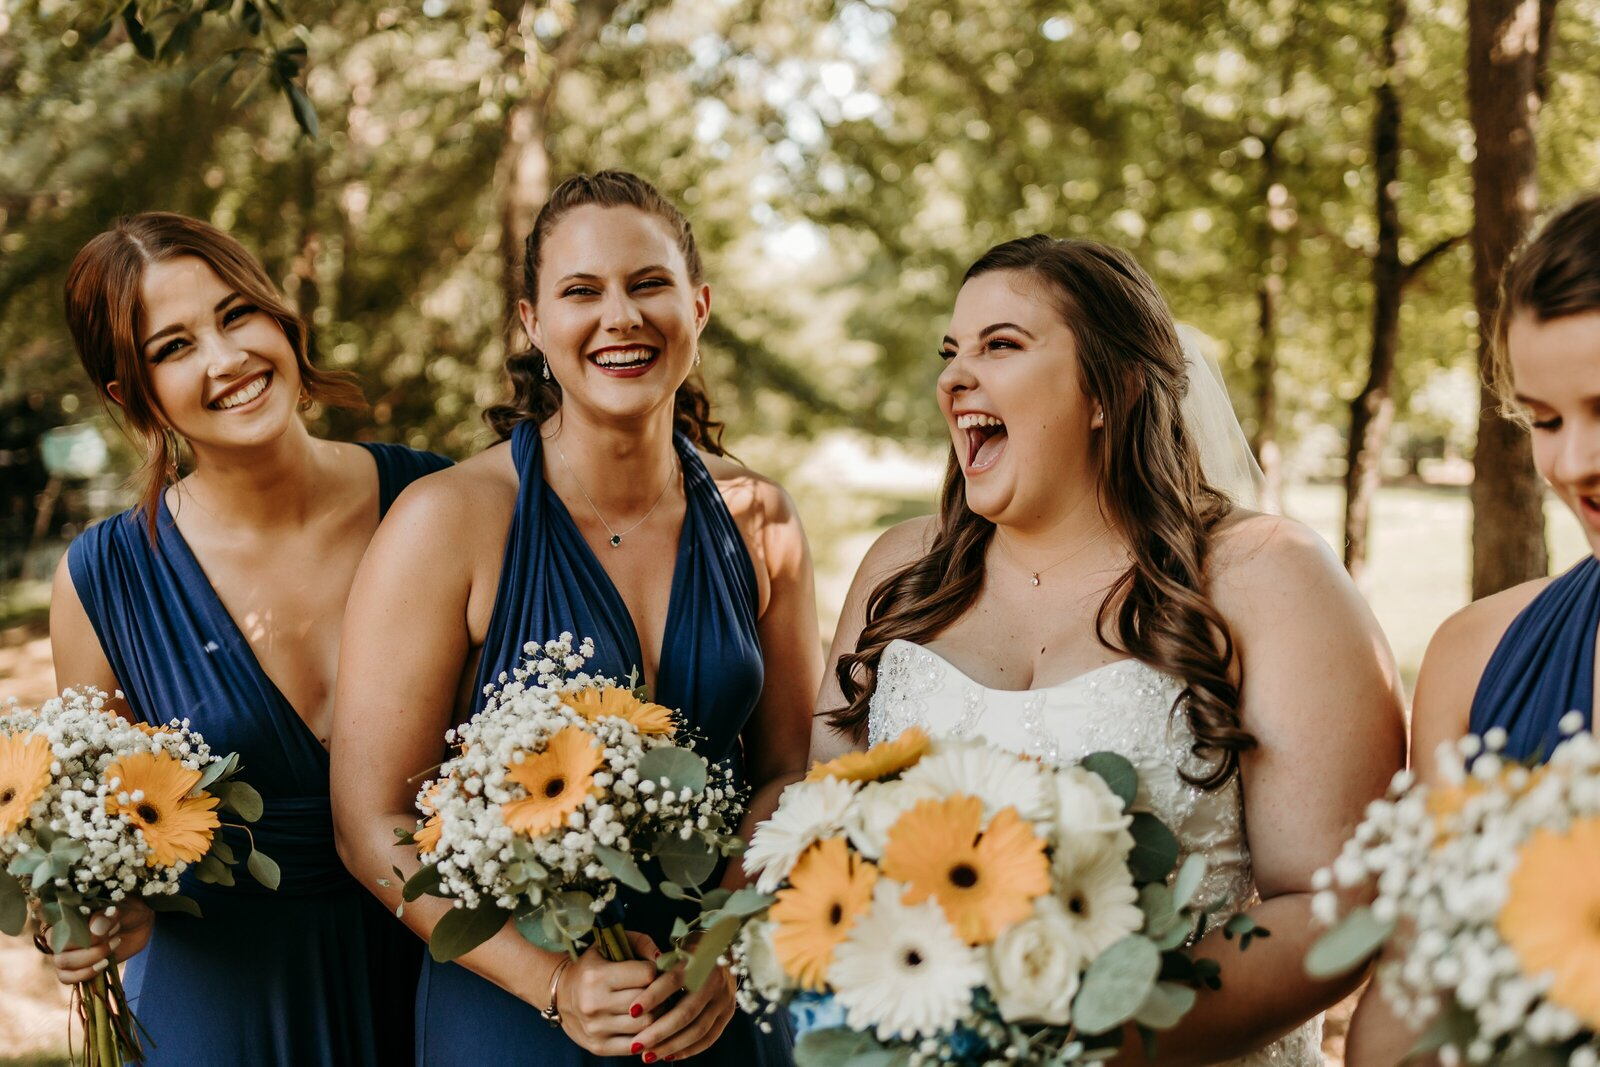 J.Michelle Photography photographs bride and bridesmaids laughing